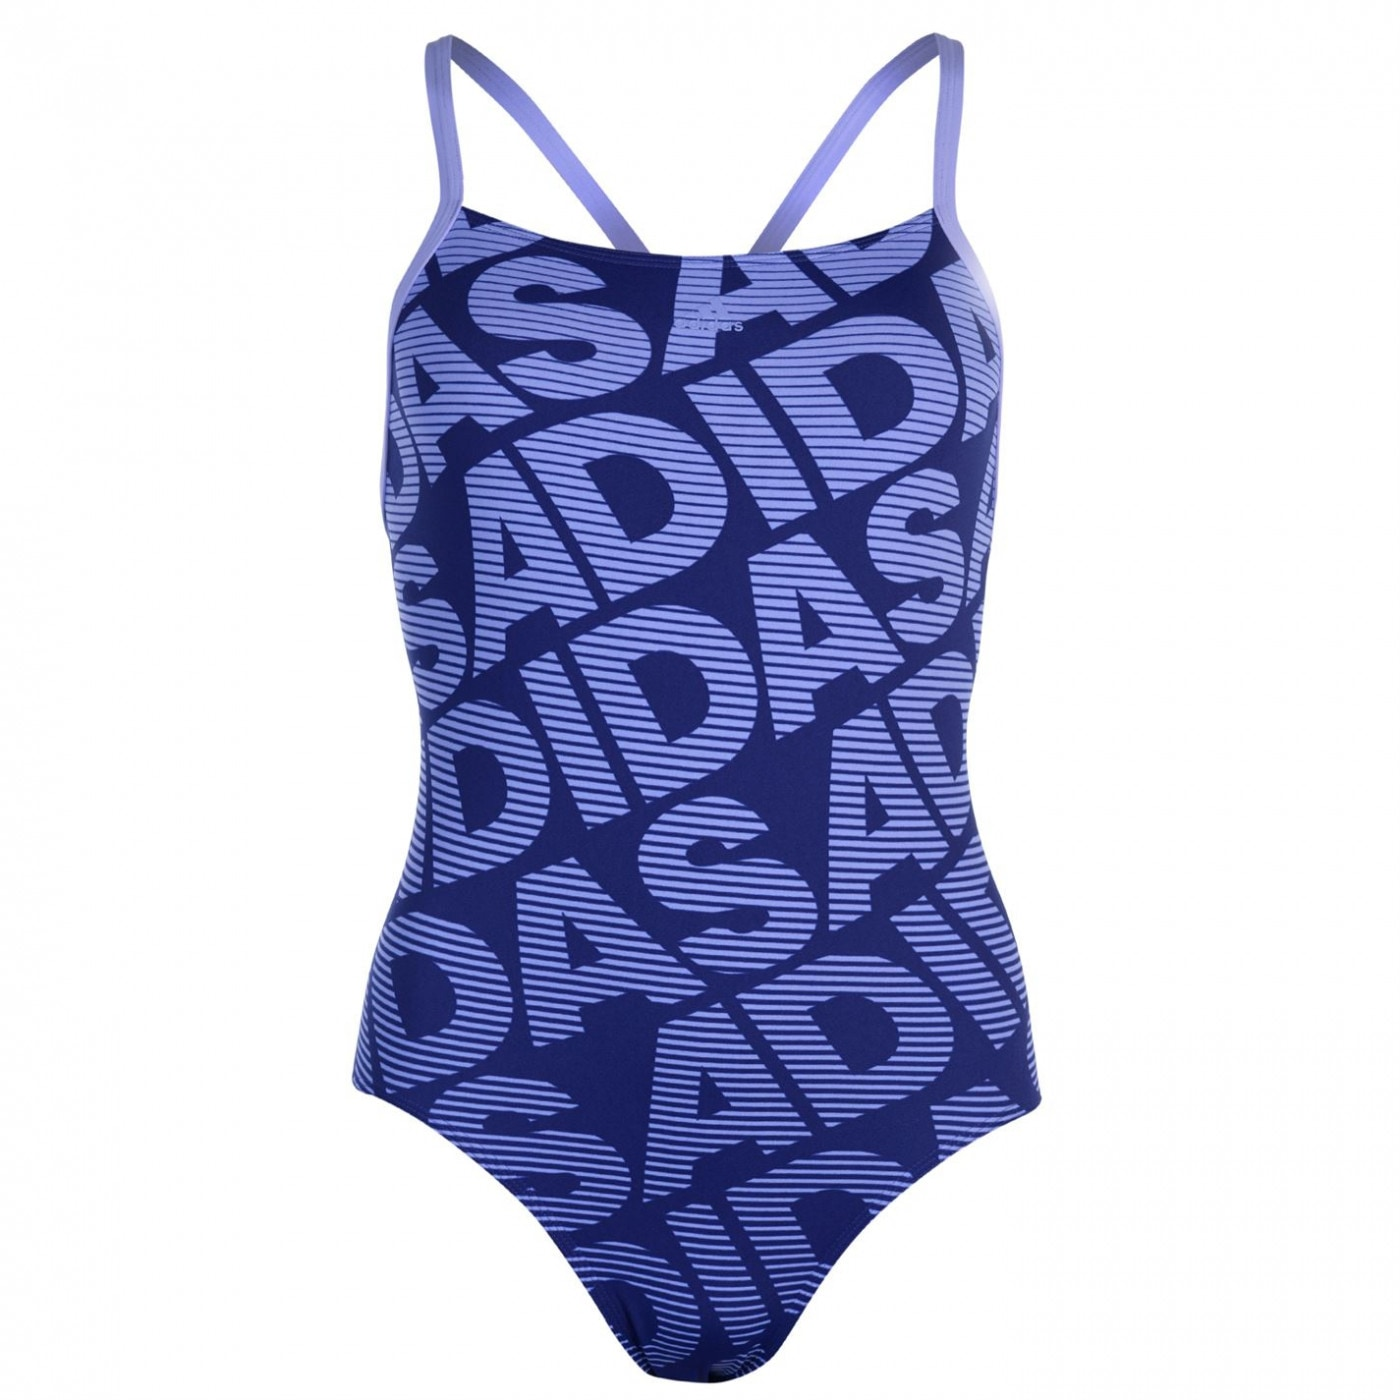 Adidas Lined One Piece Swimsuit Ladies